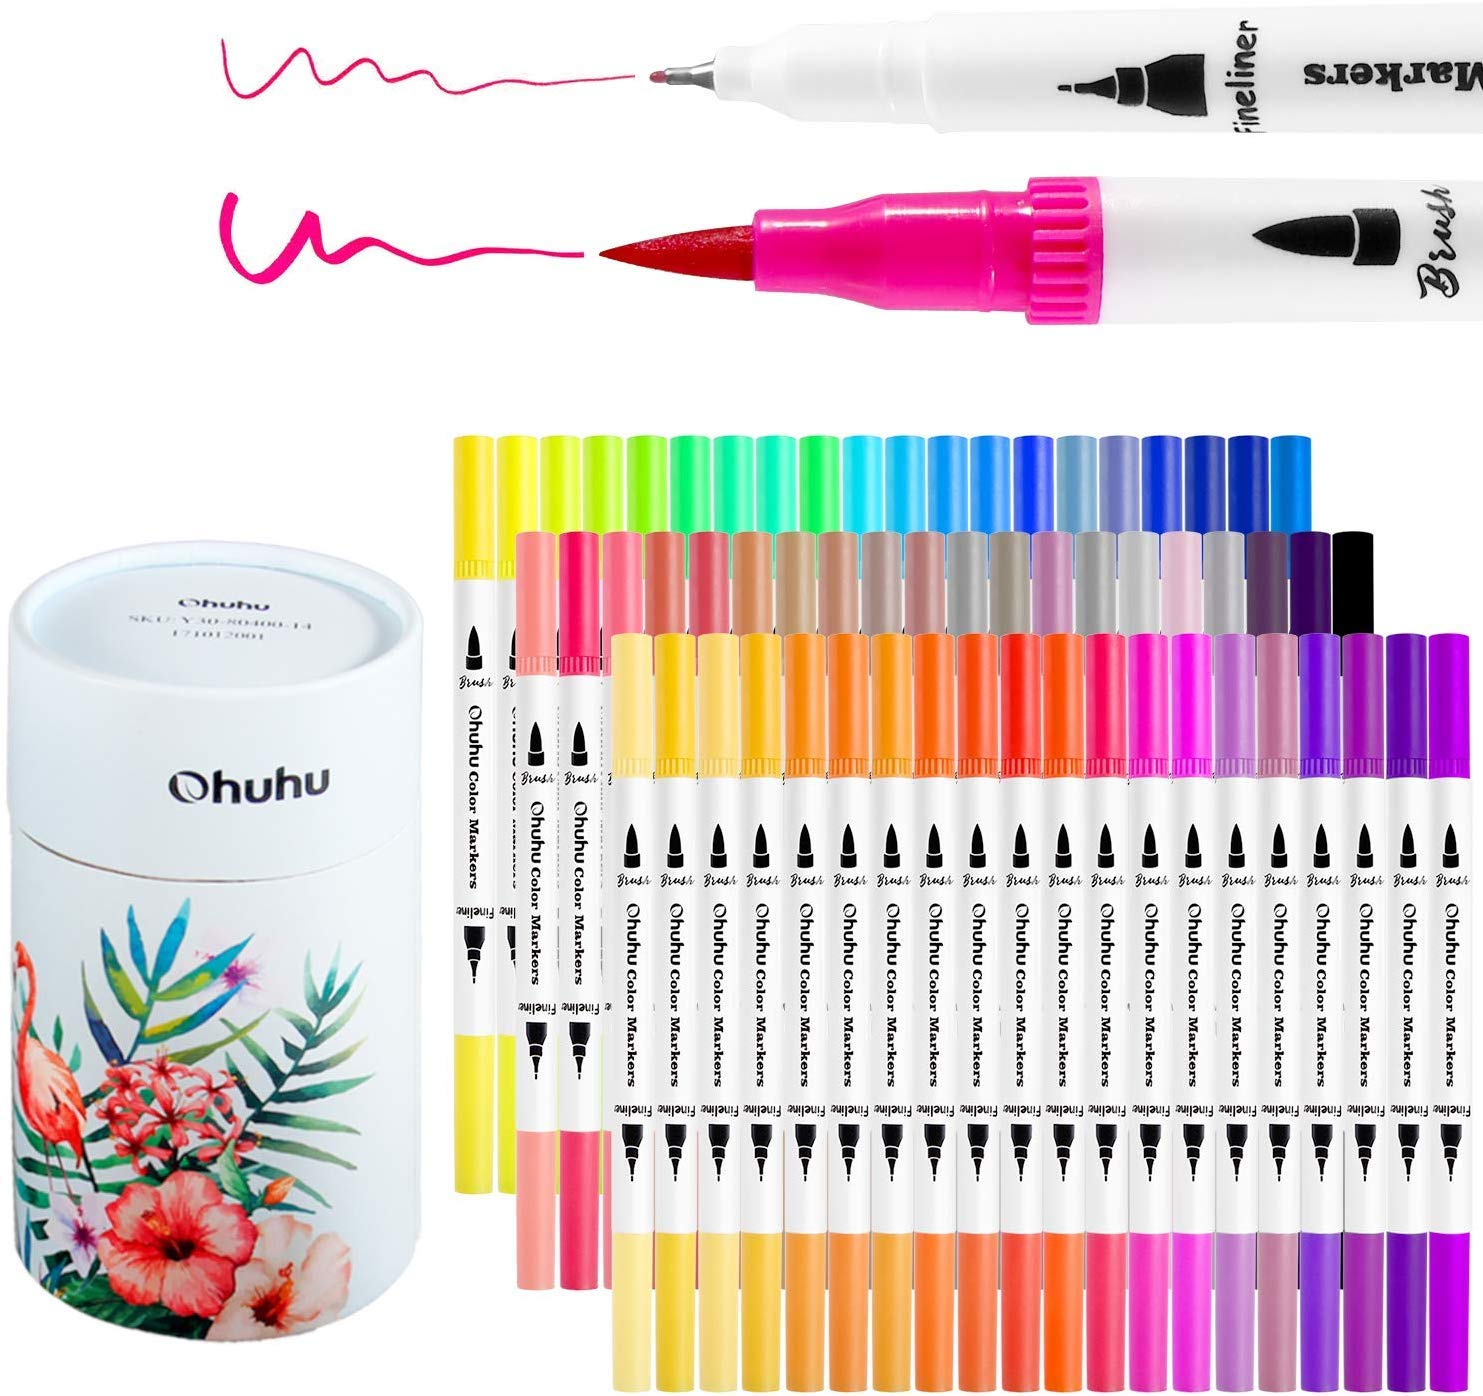 Ohuhu Art Markers Dual Tips Coloring Brush Fineliner Color Pens, 60 Colors of Water Based Marker for Calligraphy Drawing Sketching Coloring Book Bullet Journal Art Projects for Christmas Gifts